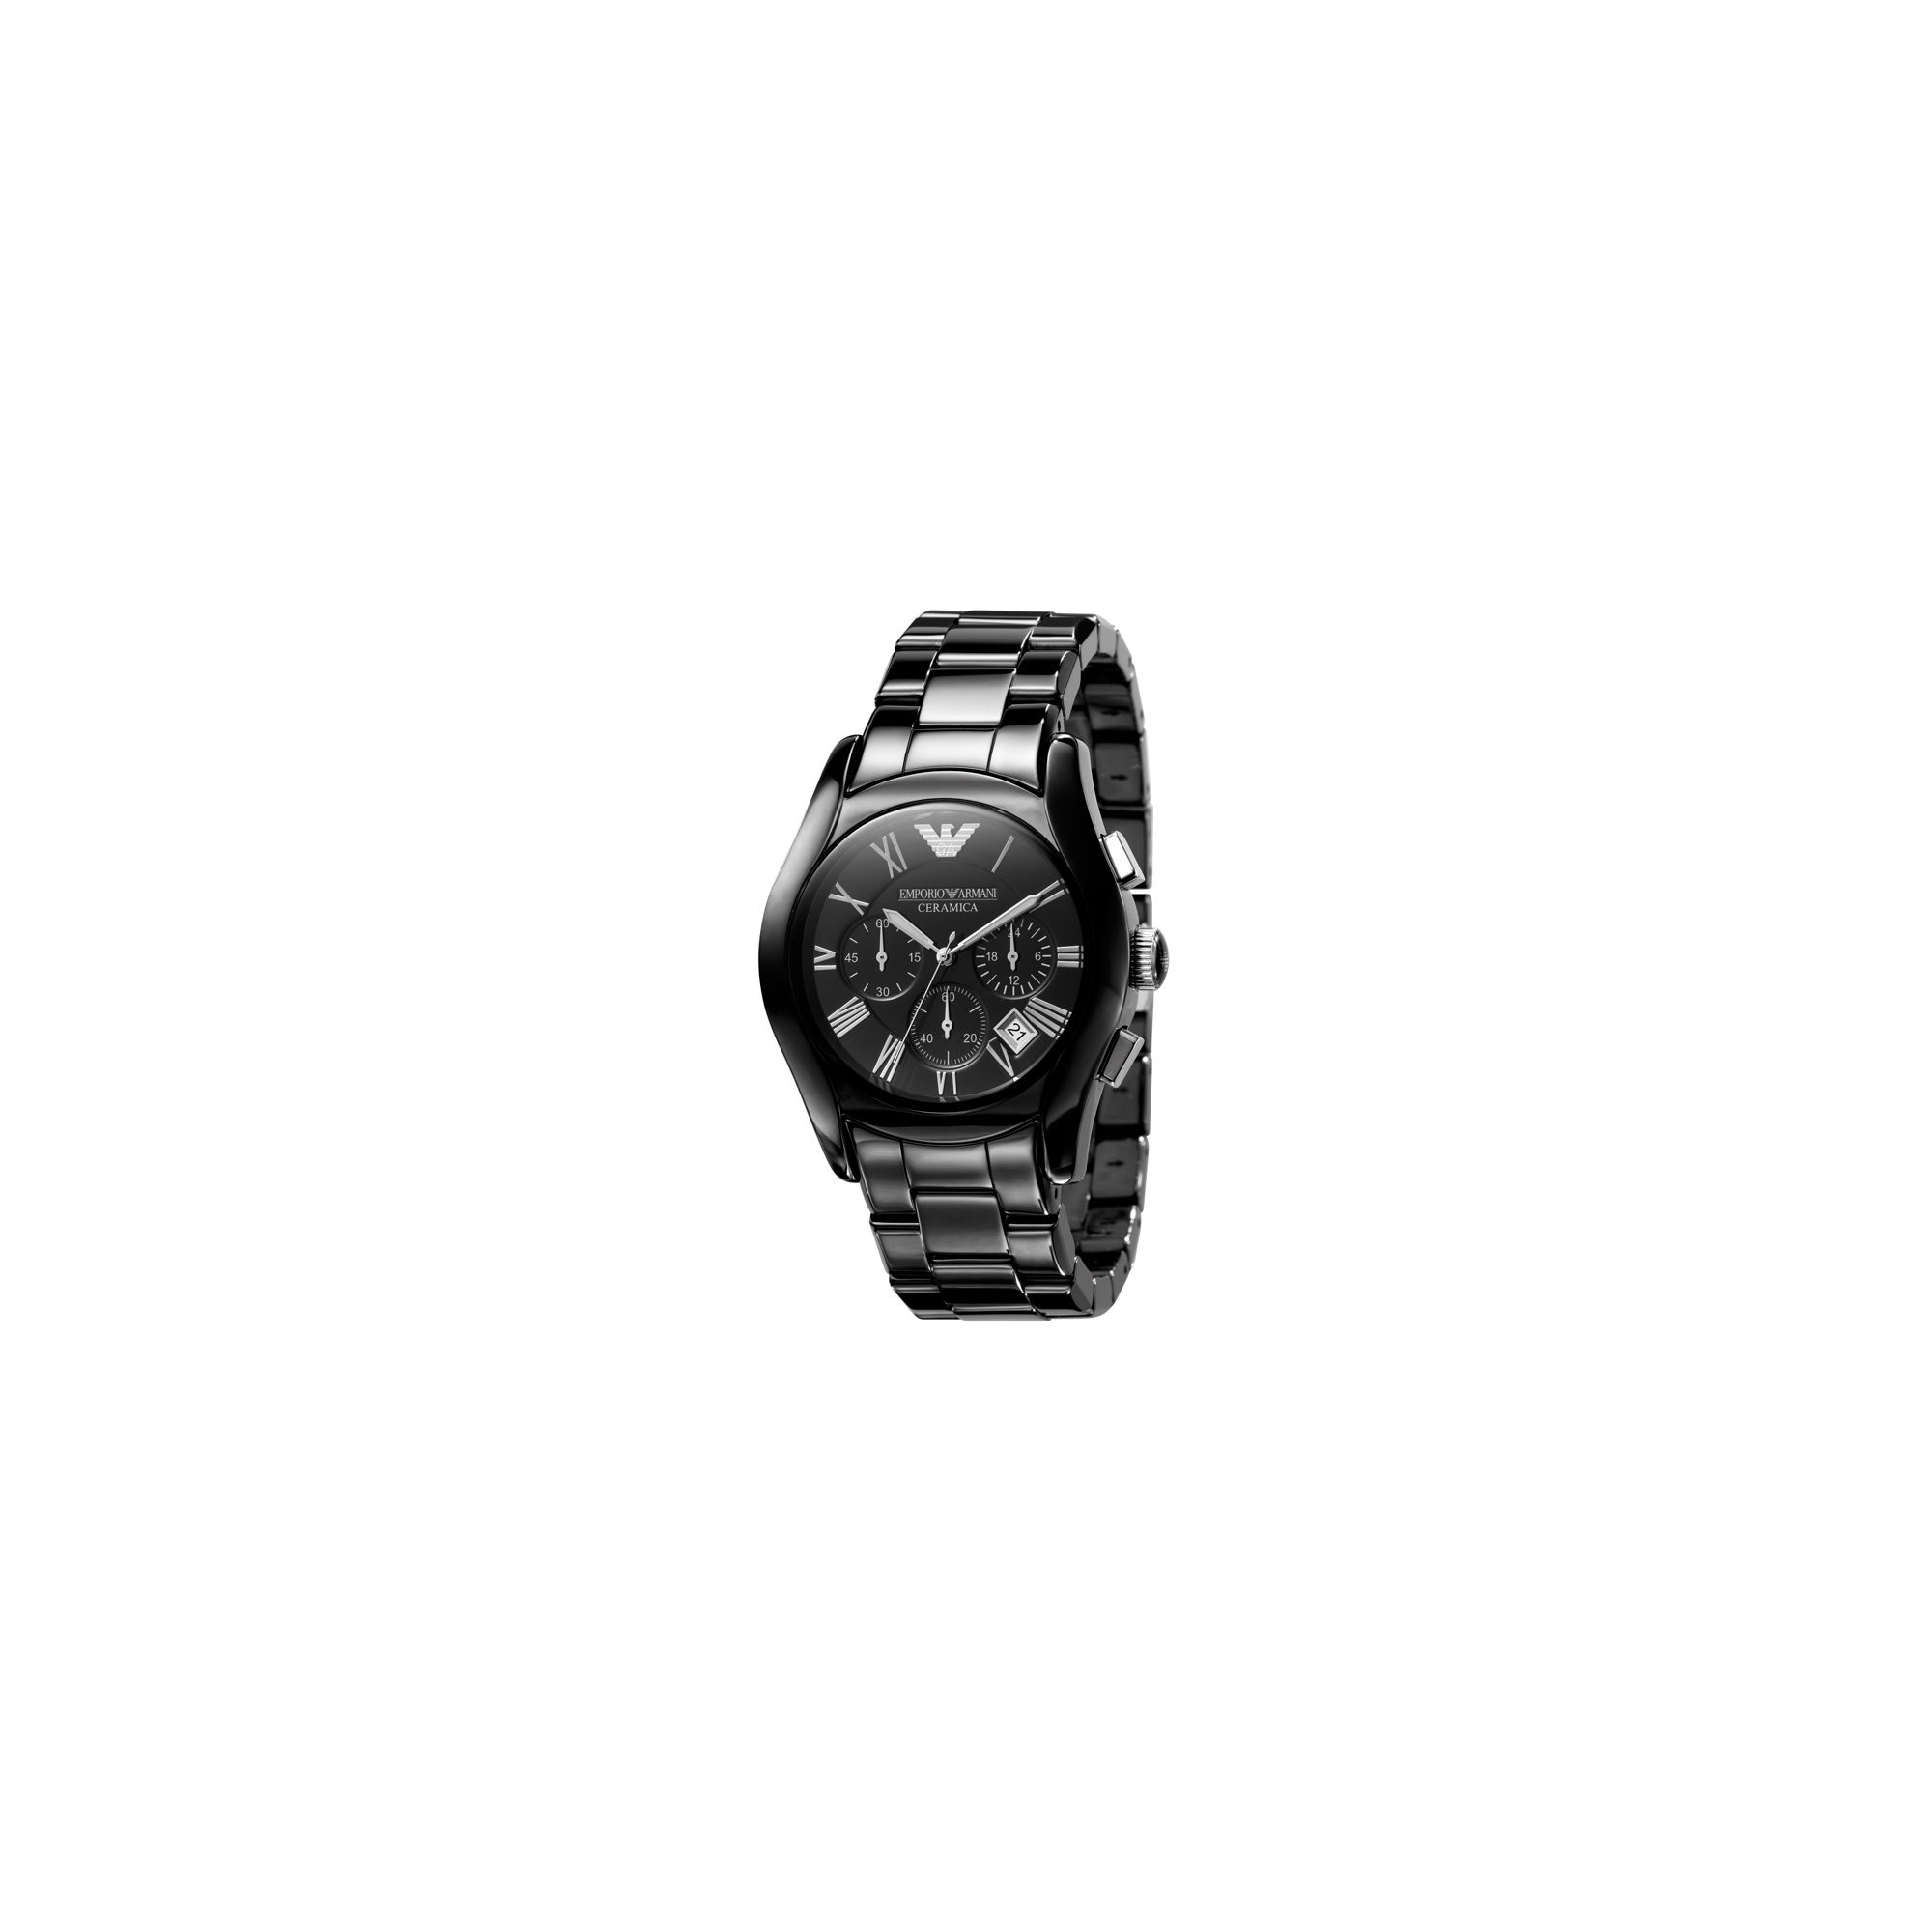 Emporio Armani Black Ceramica Chrono Watch at Tesco Direct